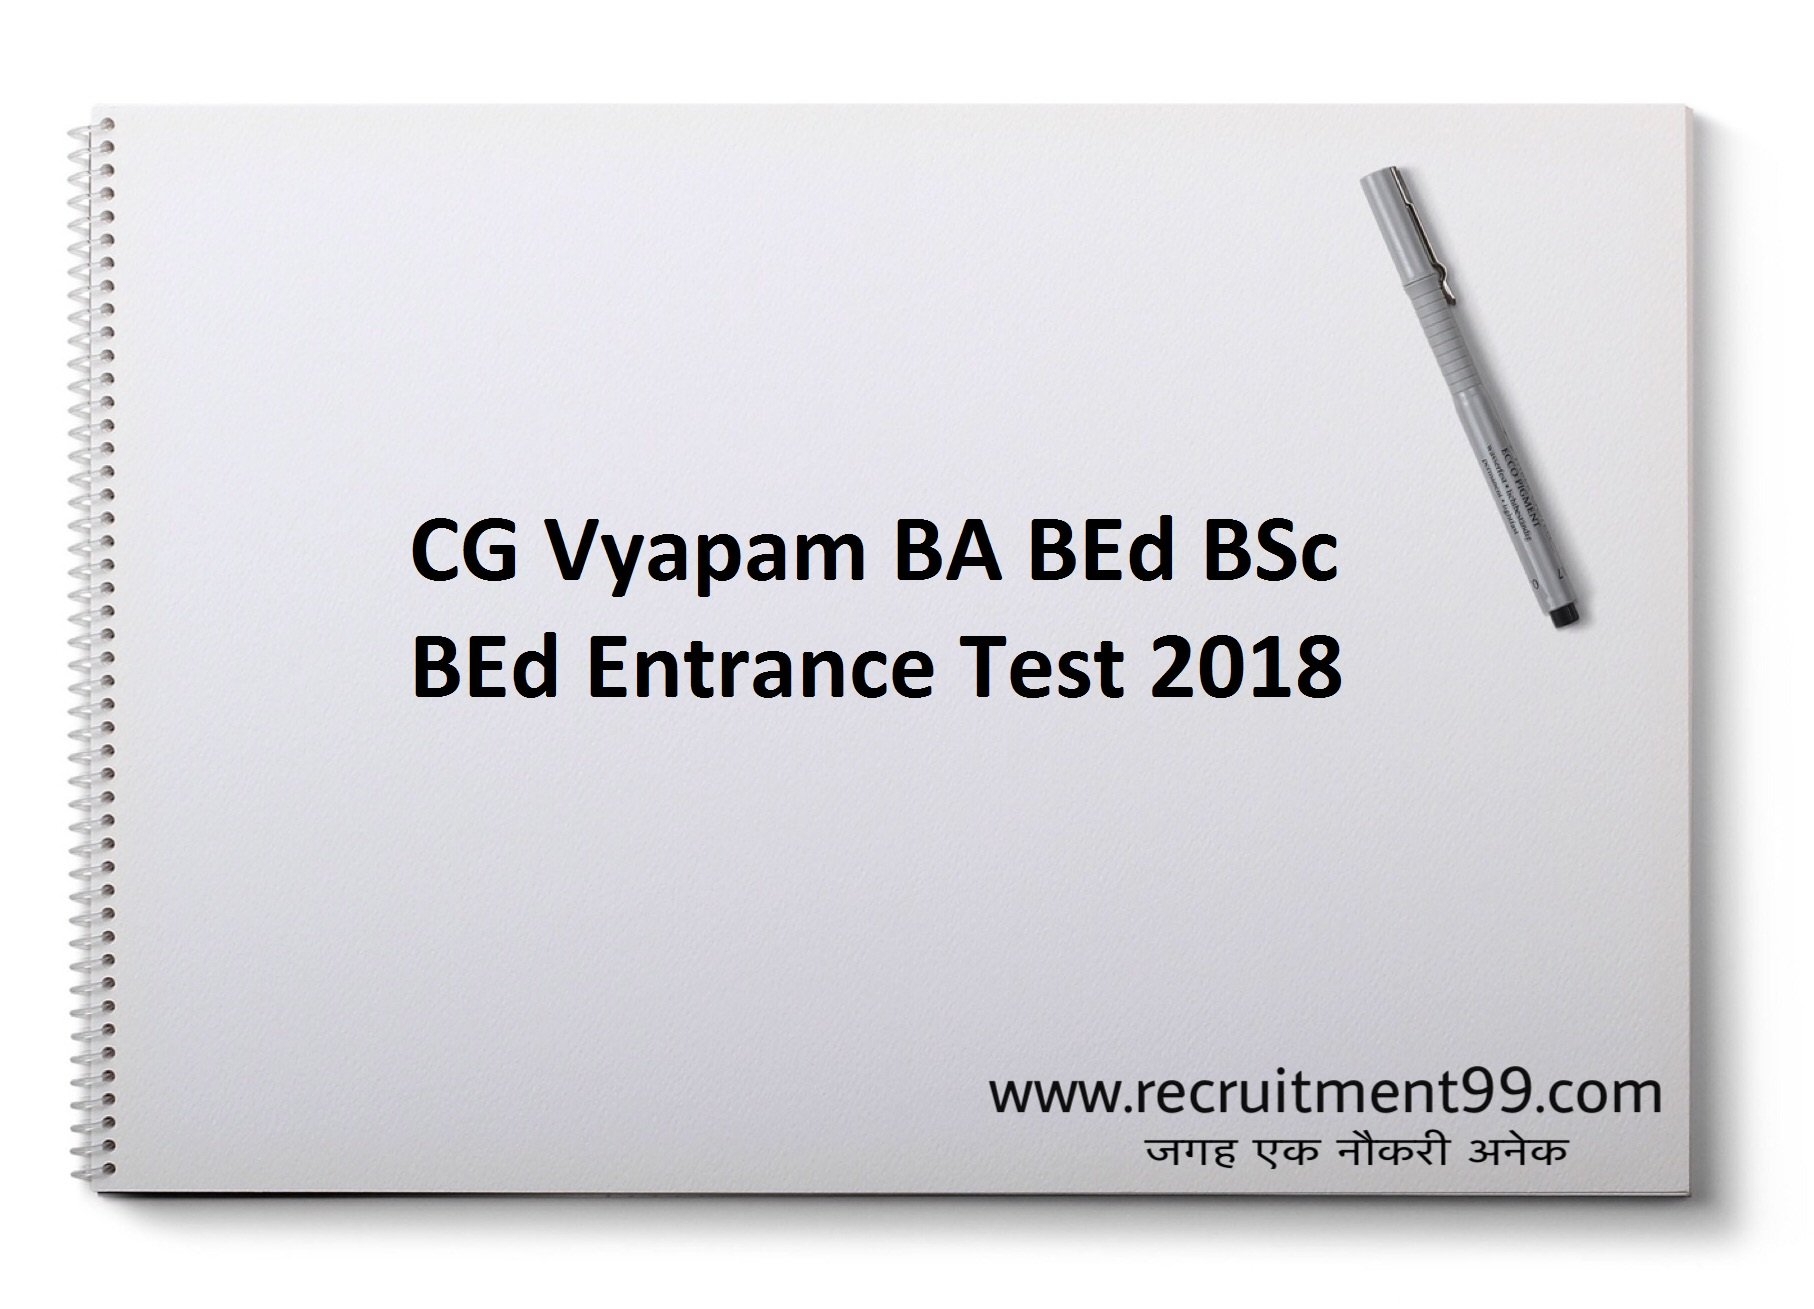 CG Vyapam BBED Entrance Test Admit Card Result 2018